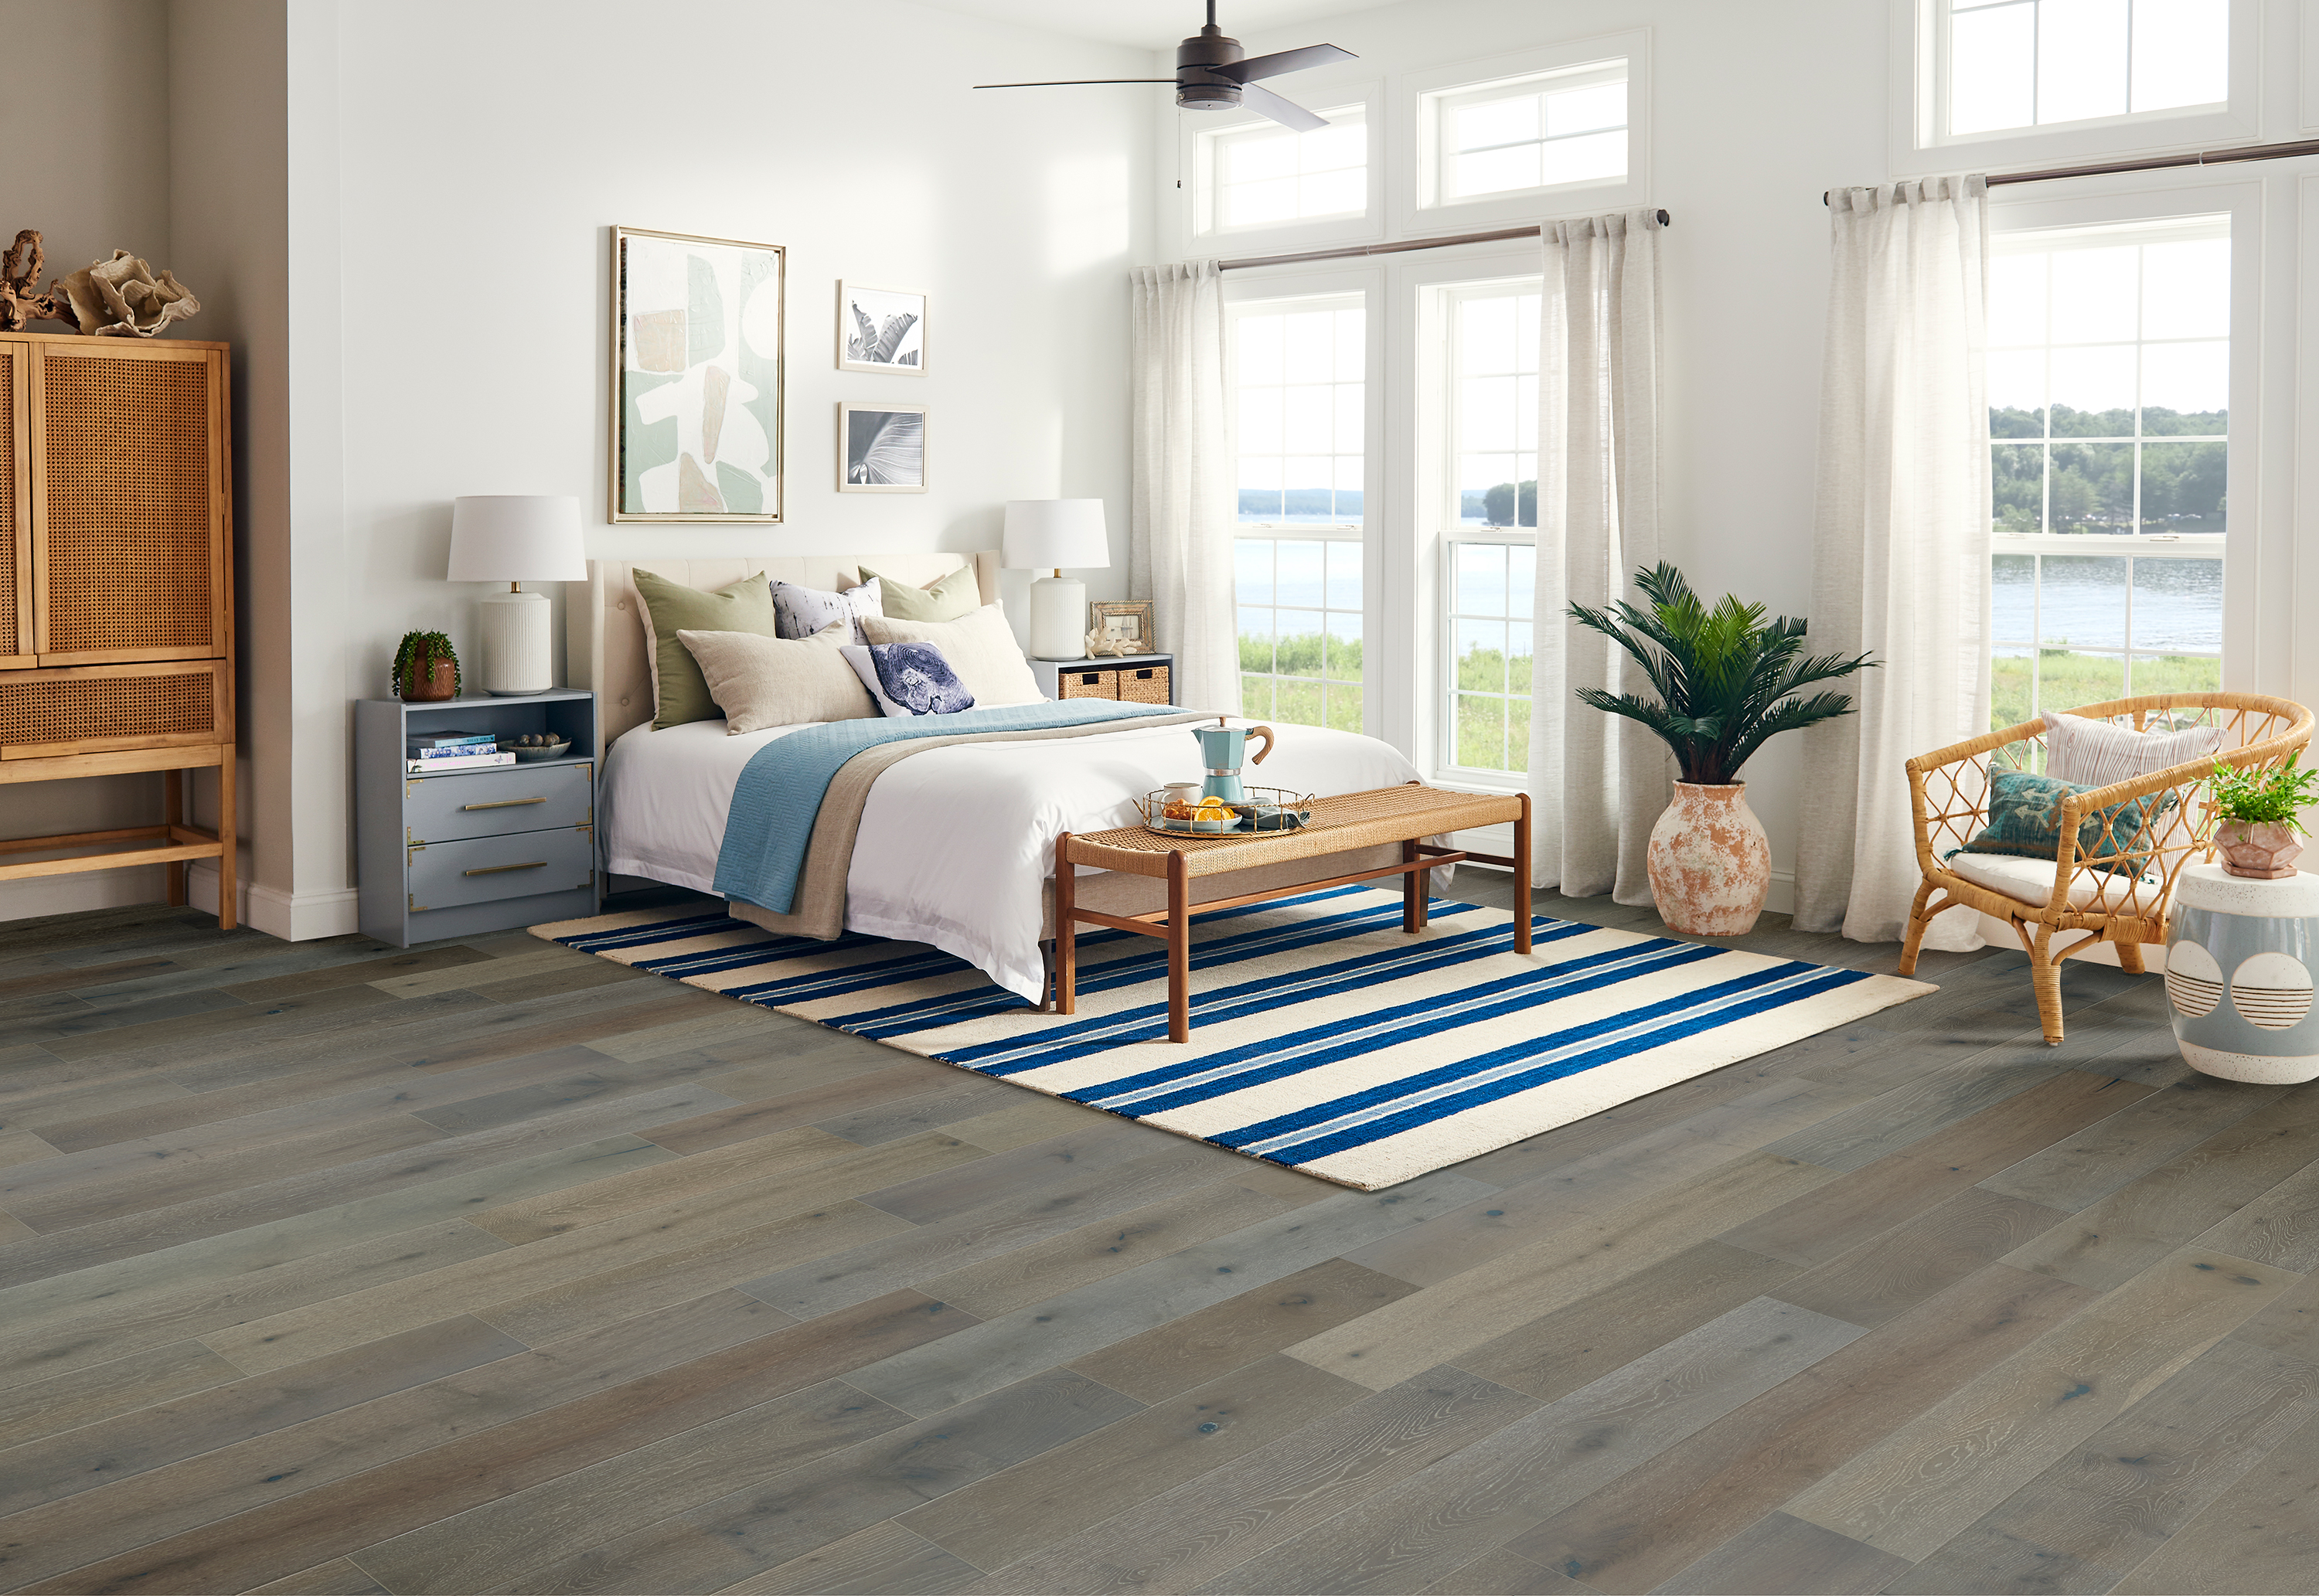 Brushed Impressions Dream State Engineered Hardwood BRBH75EK54W